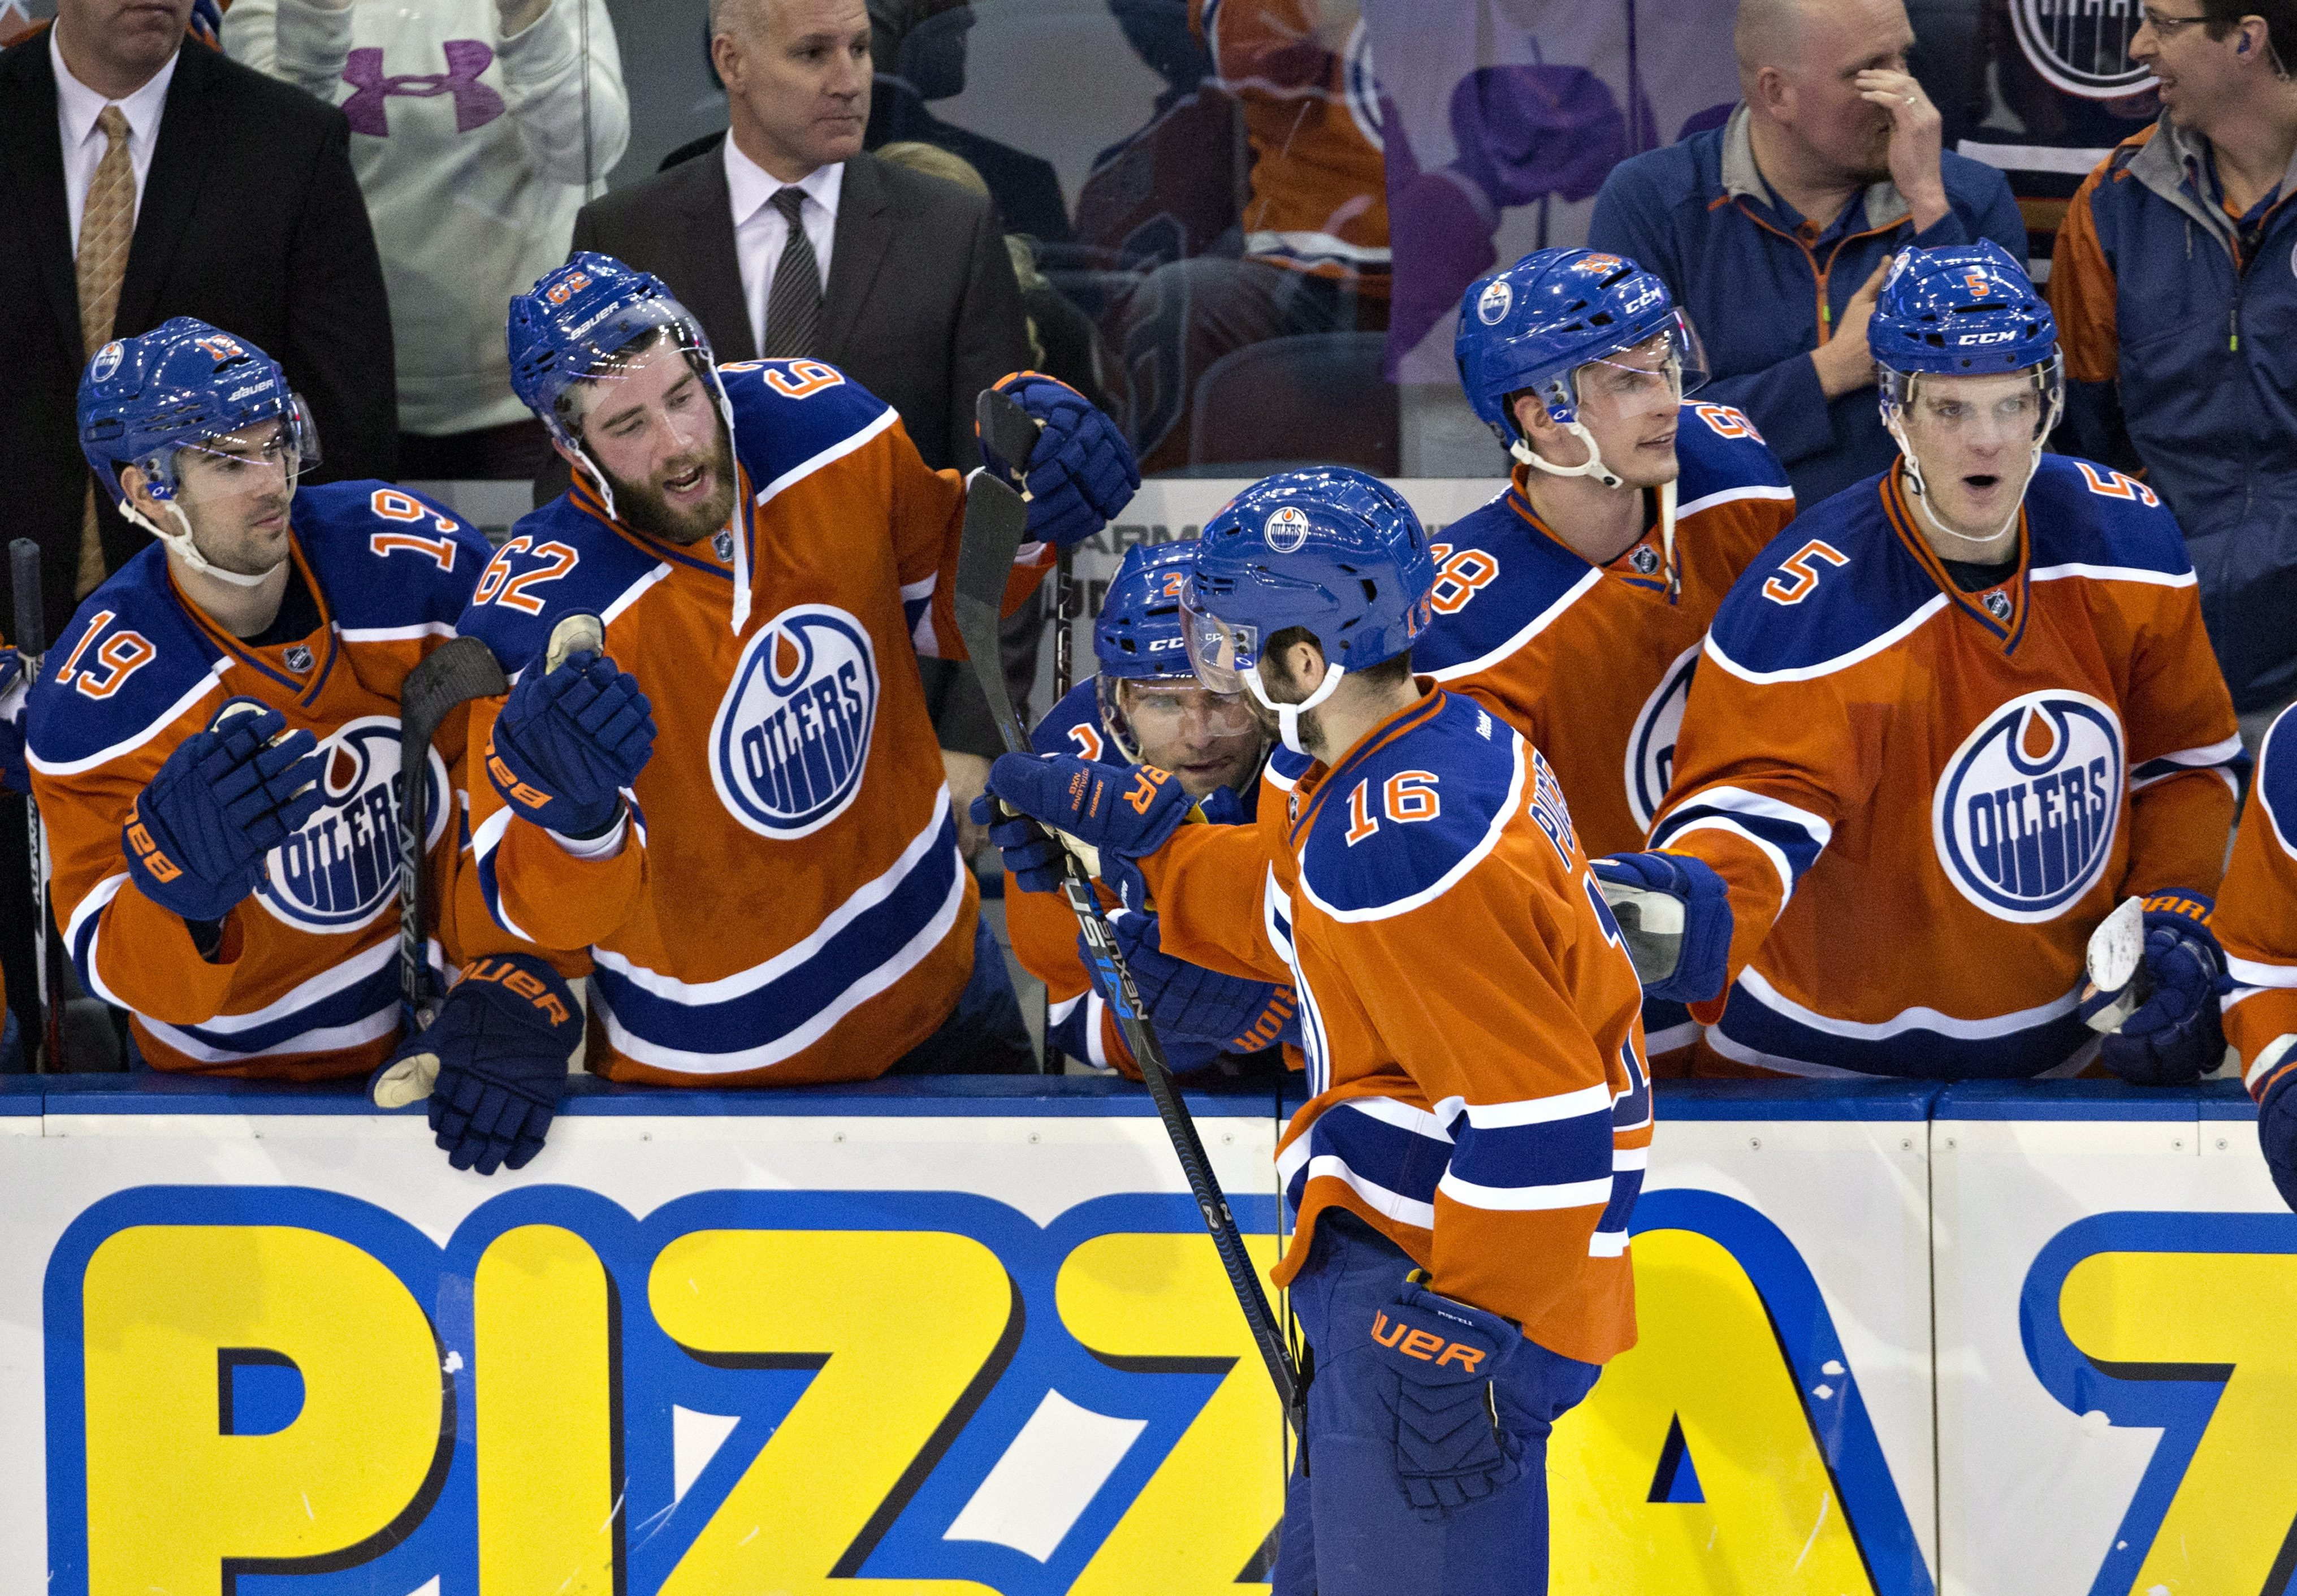 Edmonton Oilers' Teddy Purcell (16) celebrates his shootout goal against the Calgary Flames during an NHL hockey game in Edmonton, Alberta, Saturday, Jan. 16, 2016. (Jason Franson/The Canadian Press via AP) MANDATORY CREDIT